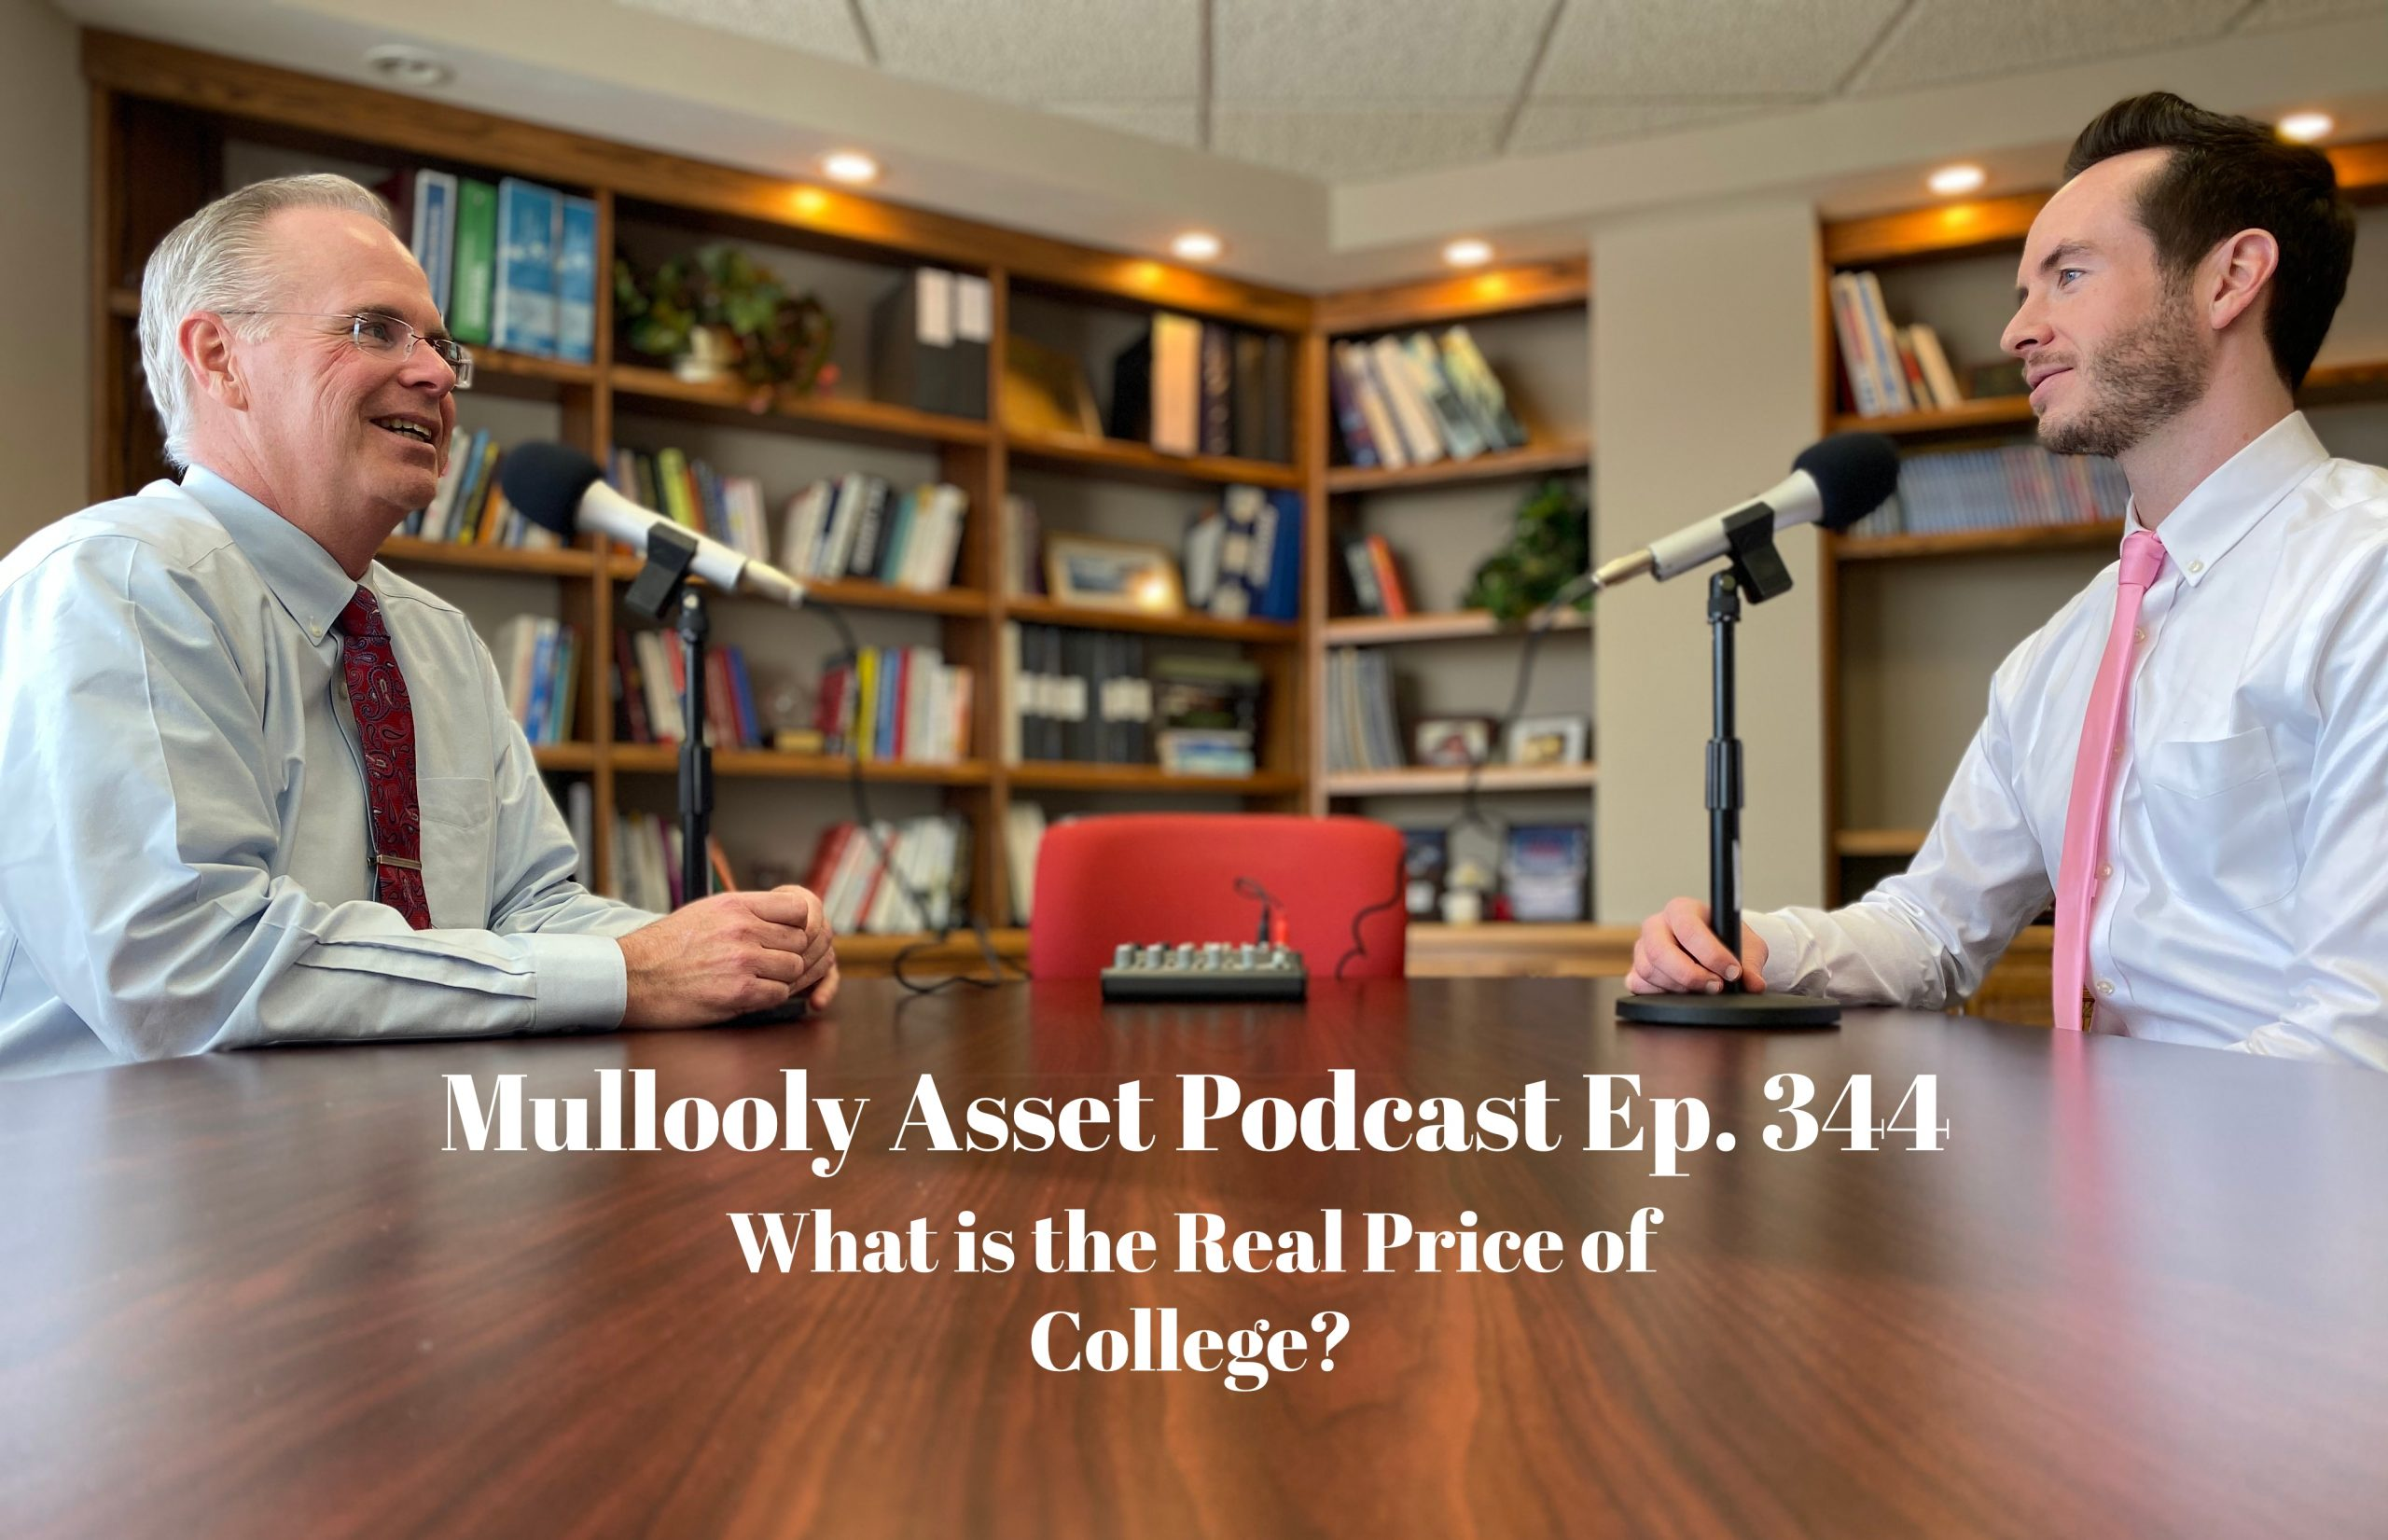 What is the Real Price of College